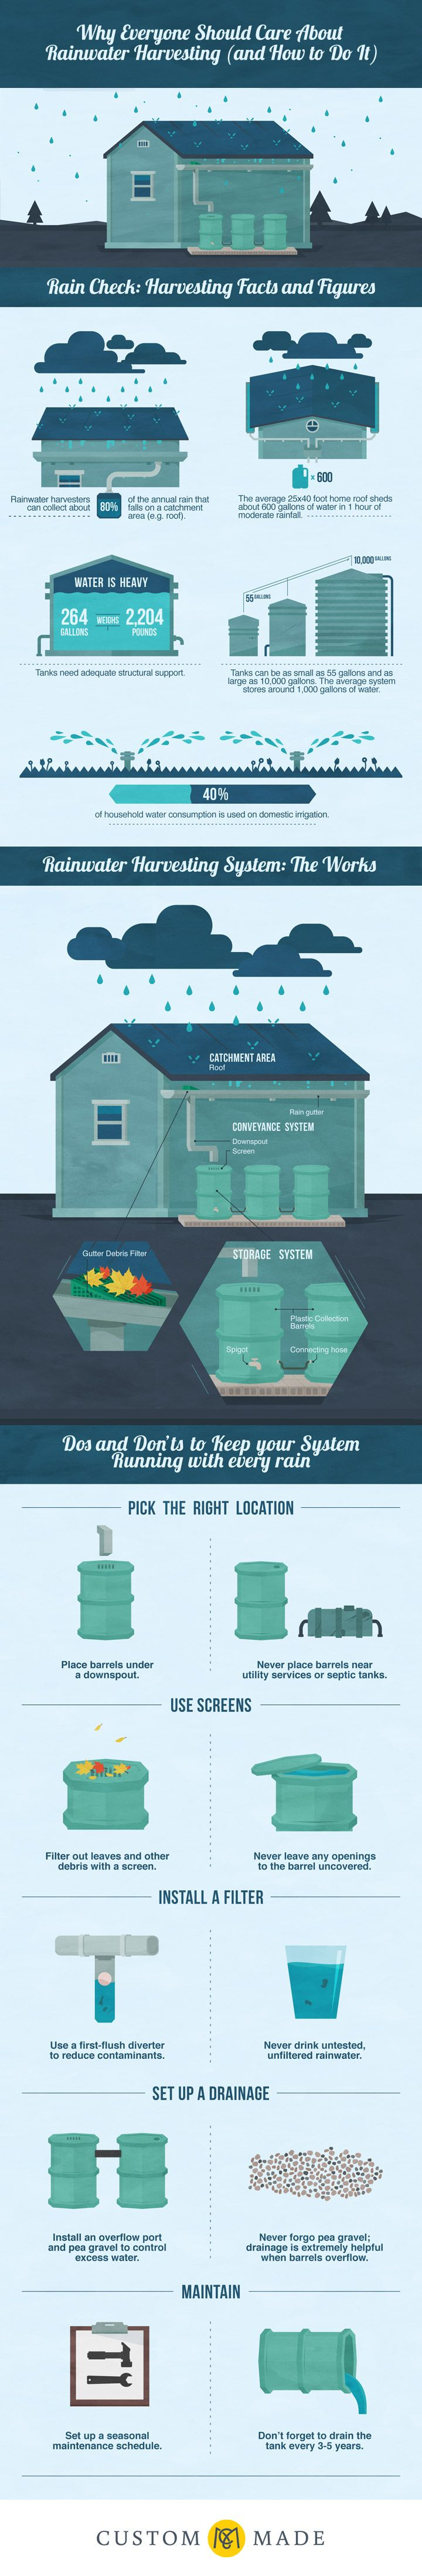 Why Everyone Should Care About Rainwater Harvesting (and How to Do It)